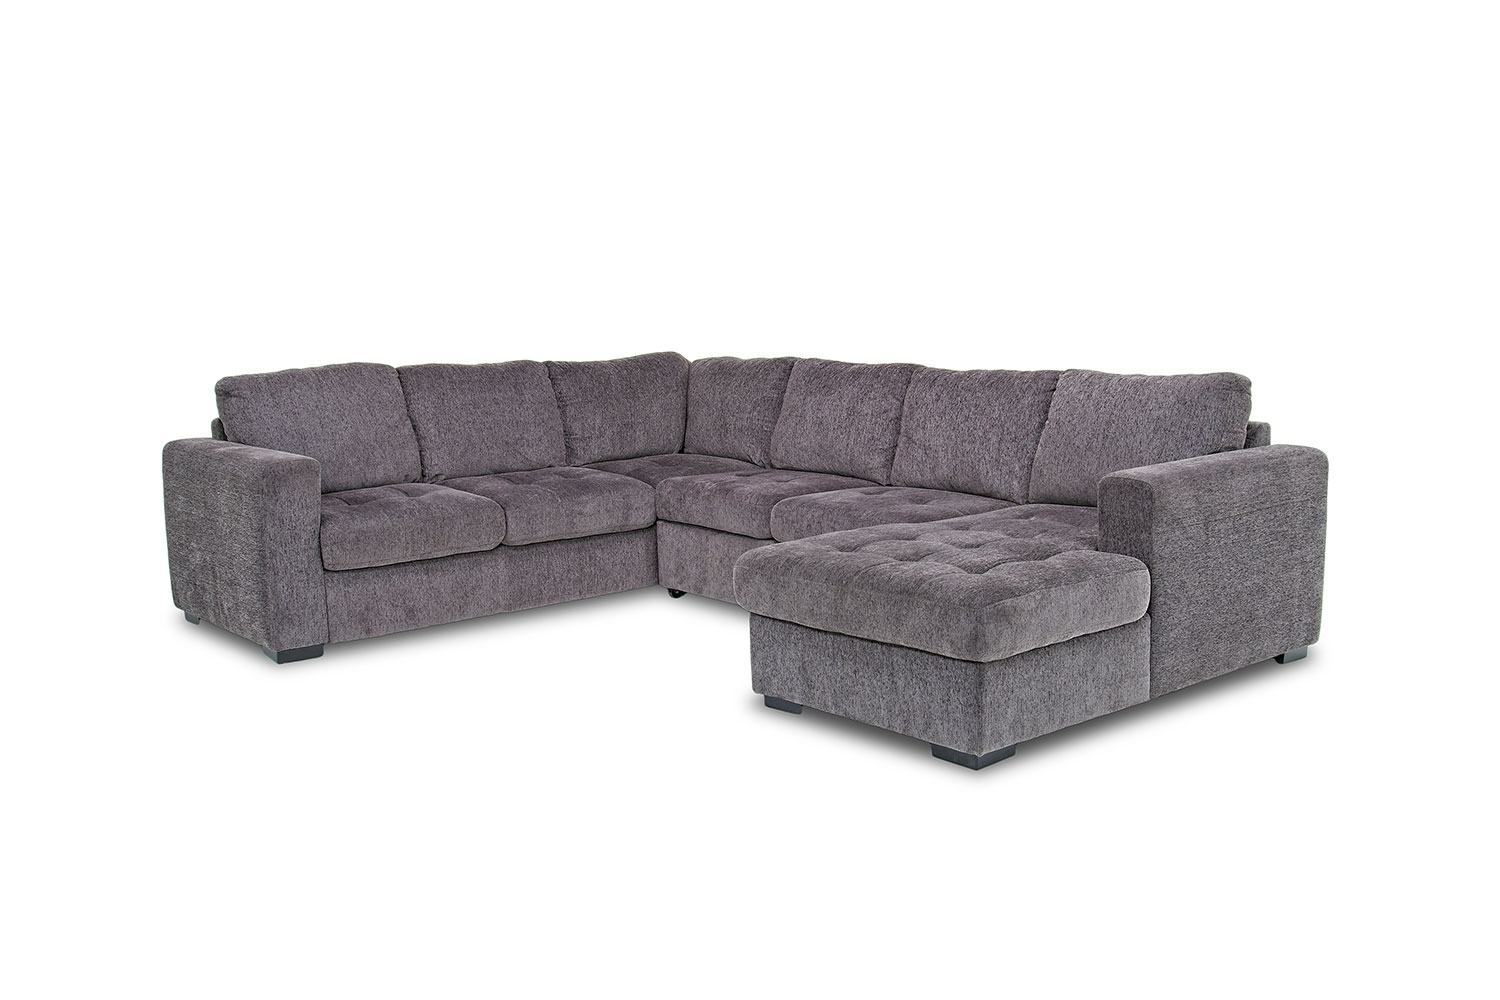 Astounding Gray Sectional Sofa With Chaise Lounge Mor Furniture Pabps2019 Chair Design Images Pabps2019Com